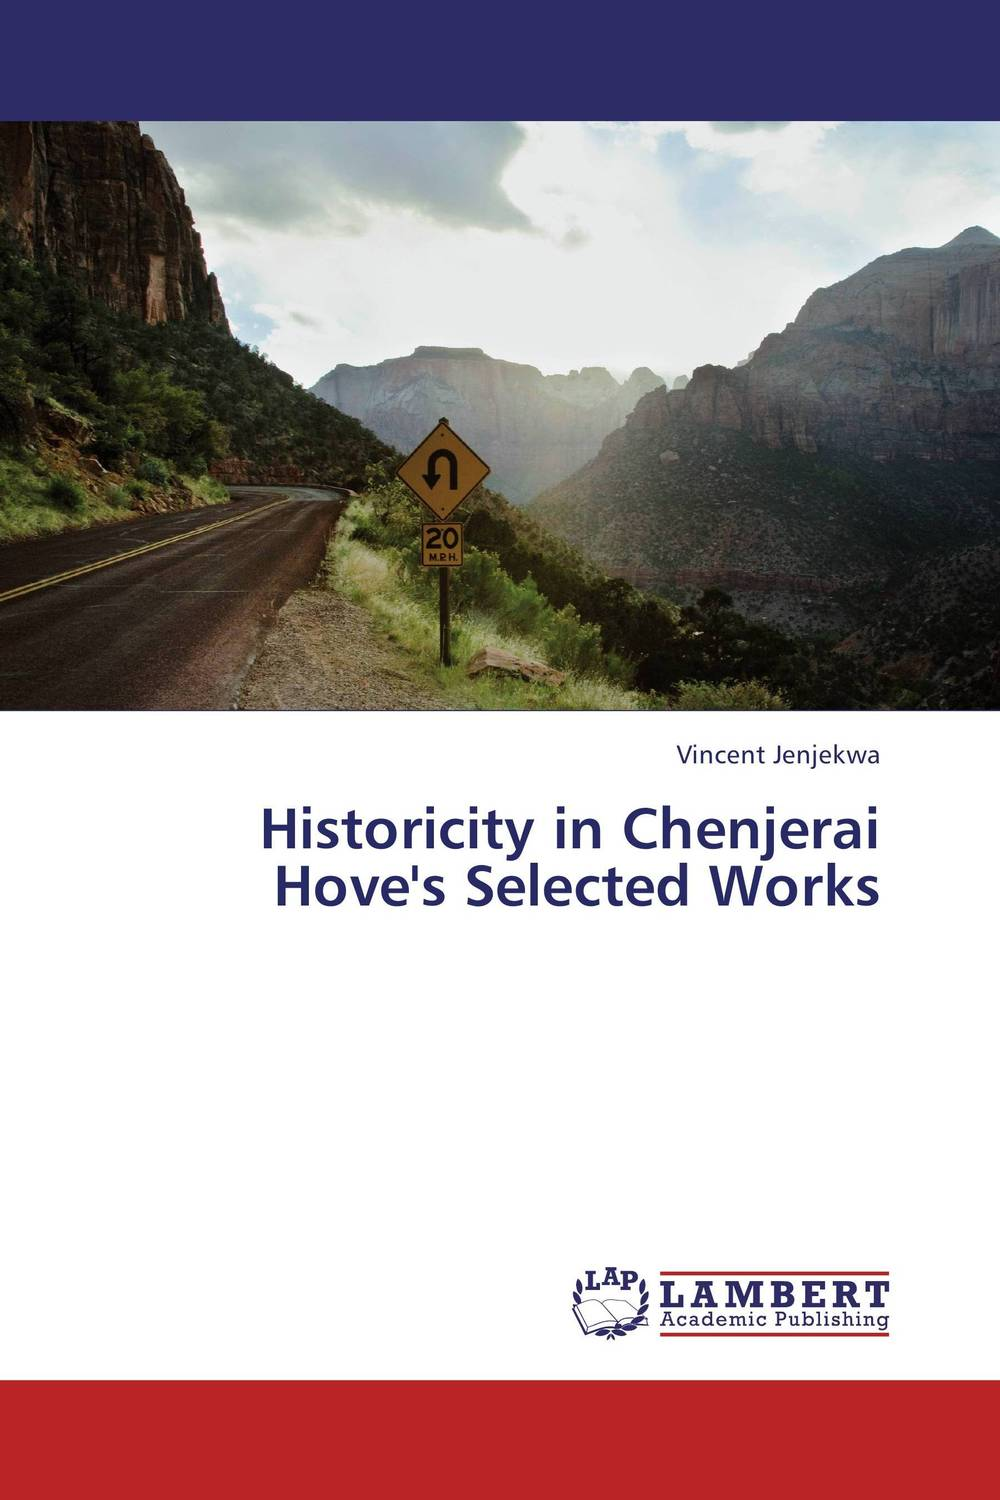 Historicity in Chenjerai Hove's Selected Works the selected works of h g wells